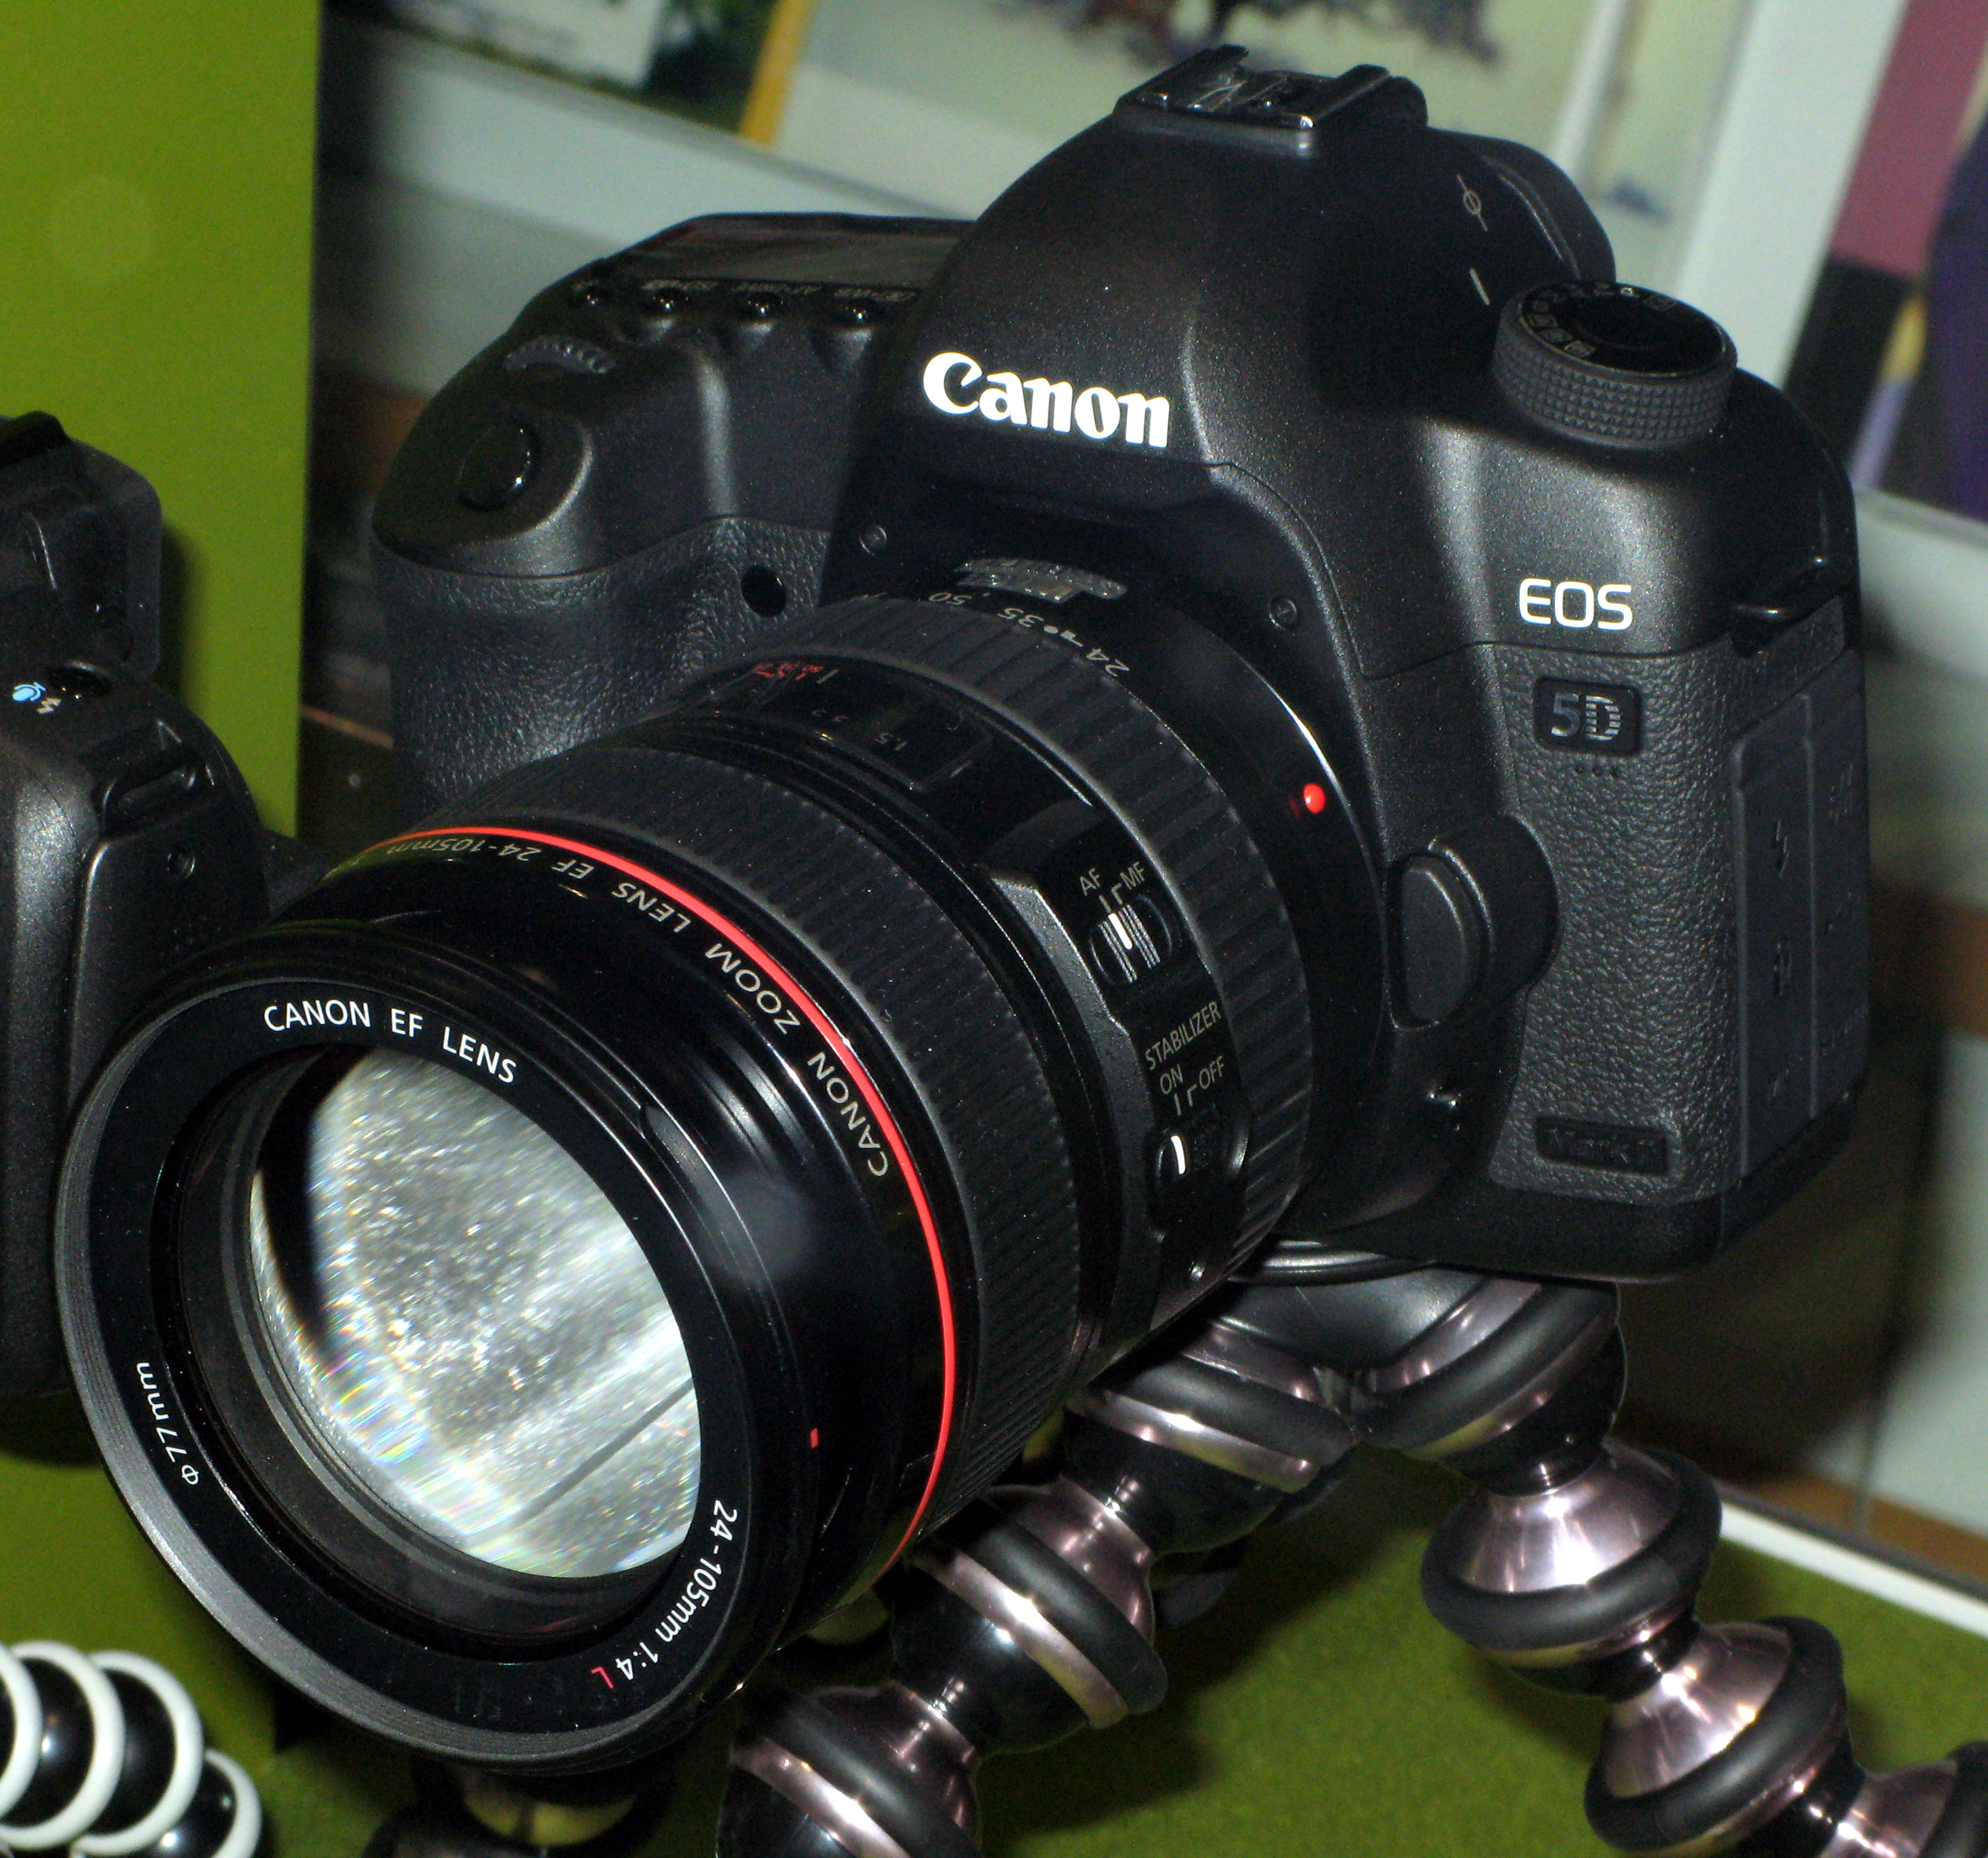 Canon EOS 5D Mark II Camera Windows 8 X64